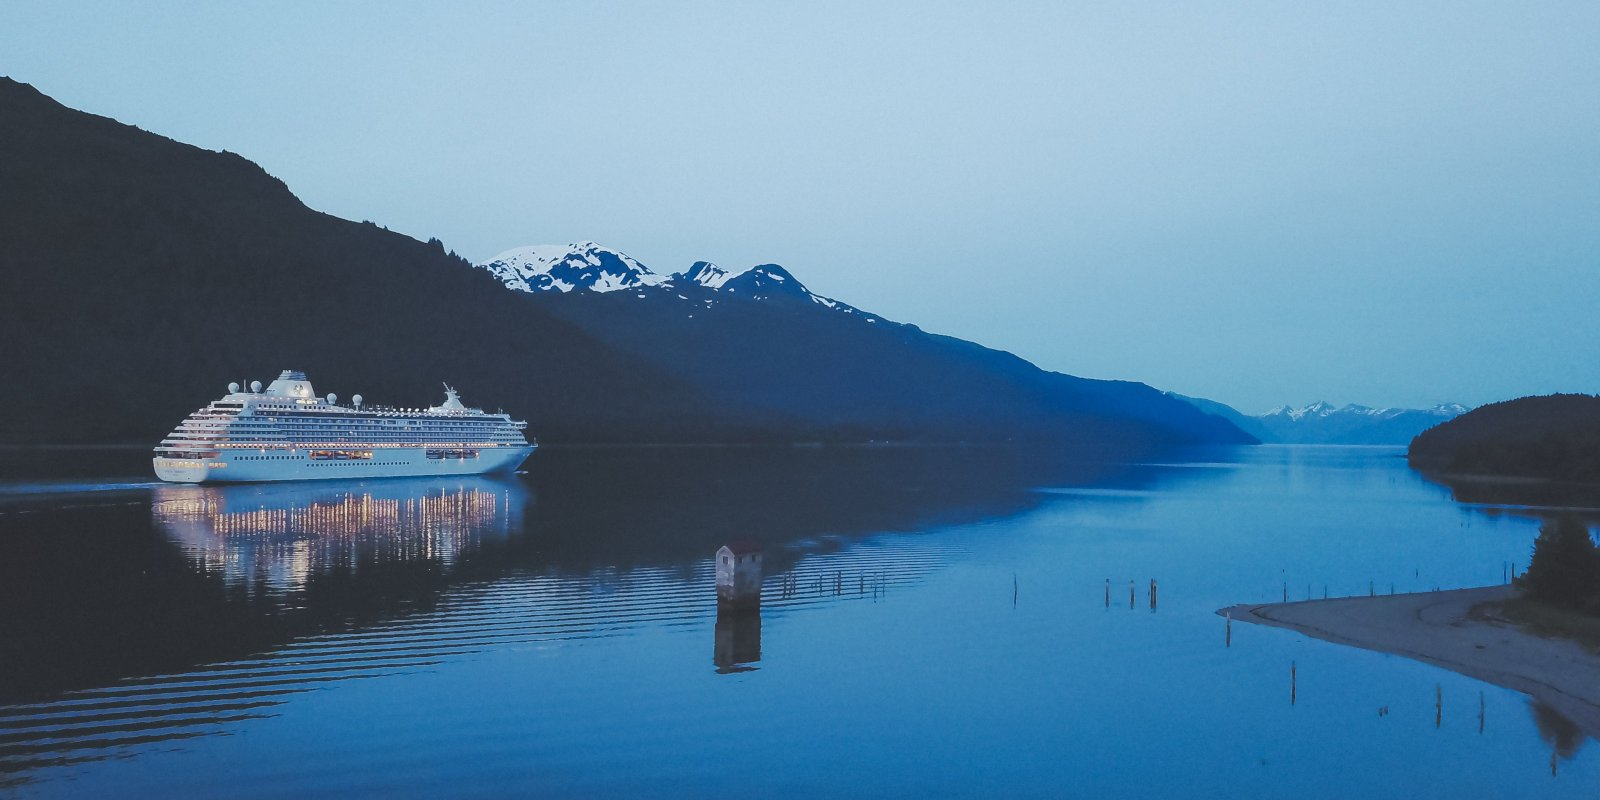 For a cruise with bears where you might see real bears, you'll love the AdventureBears 2020 Alaska cruise